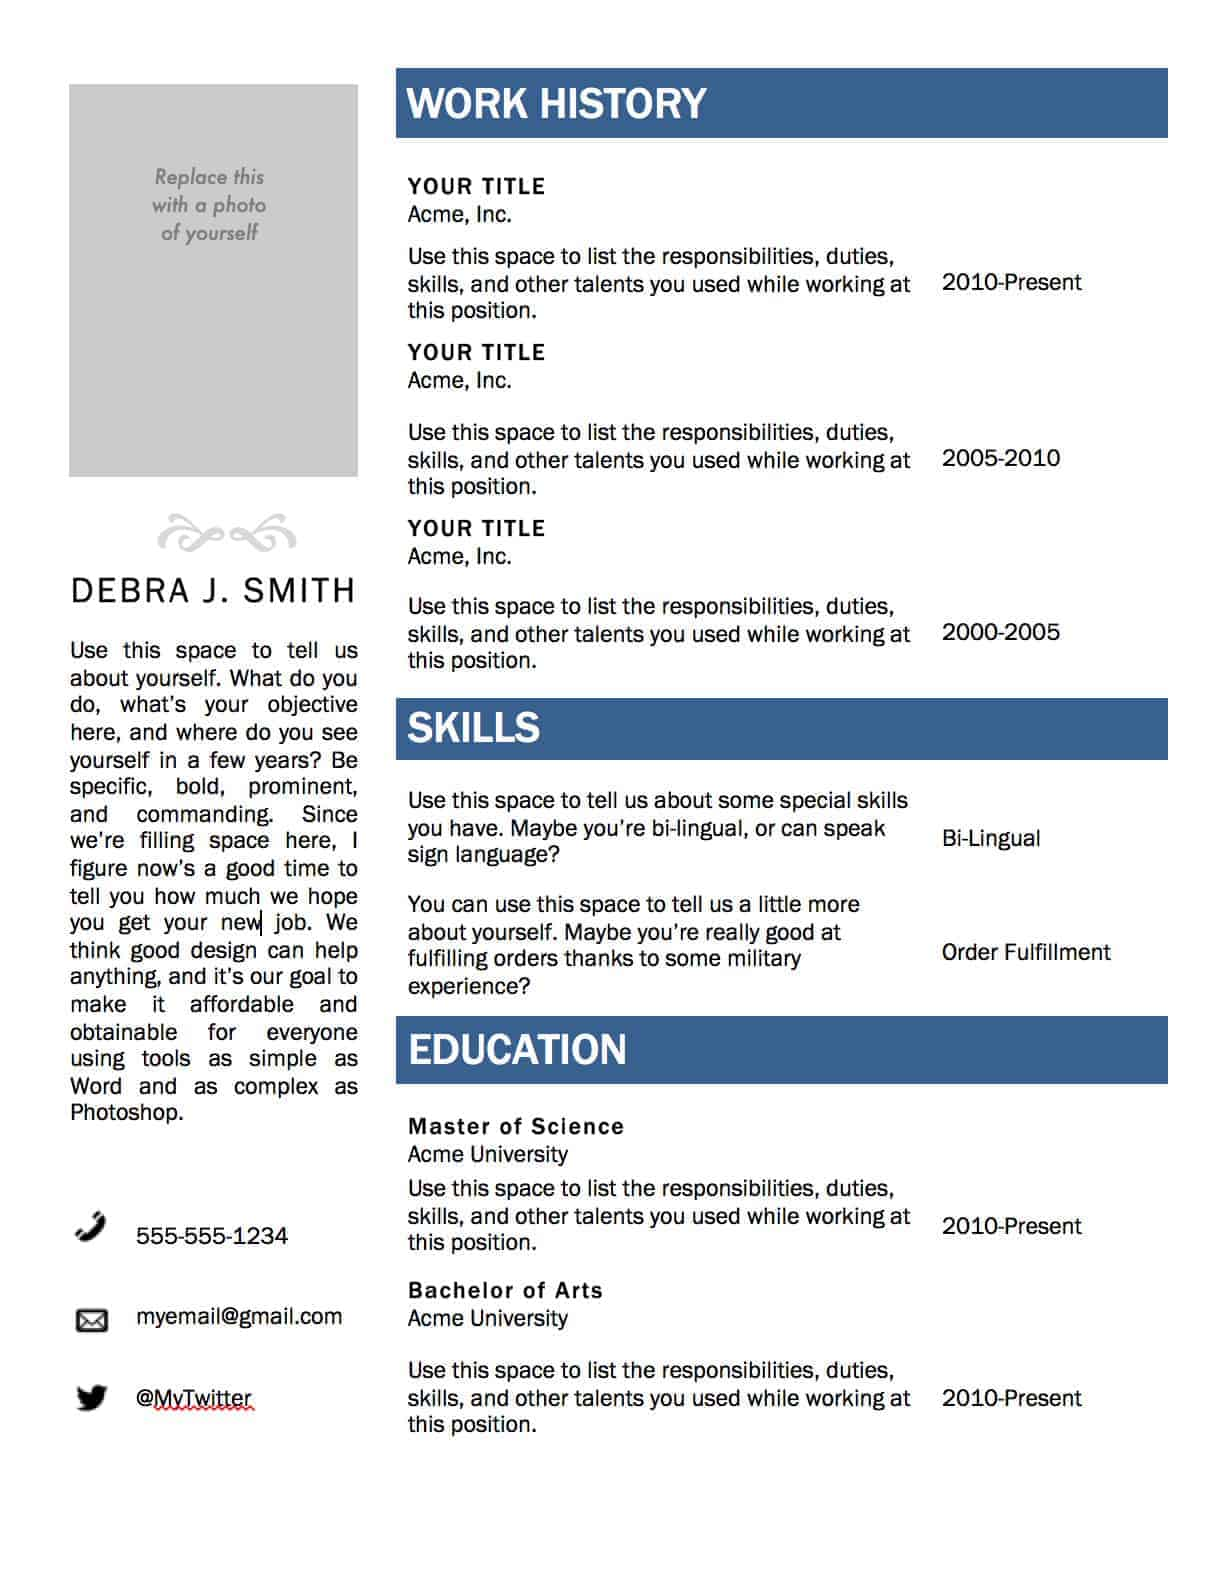 free microsoft word resume template superpixel word resume template01 free microsoft word resume template